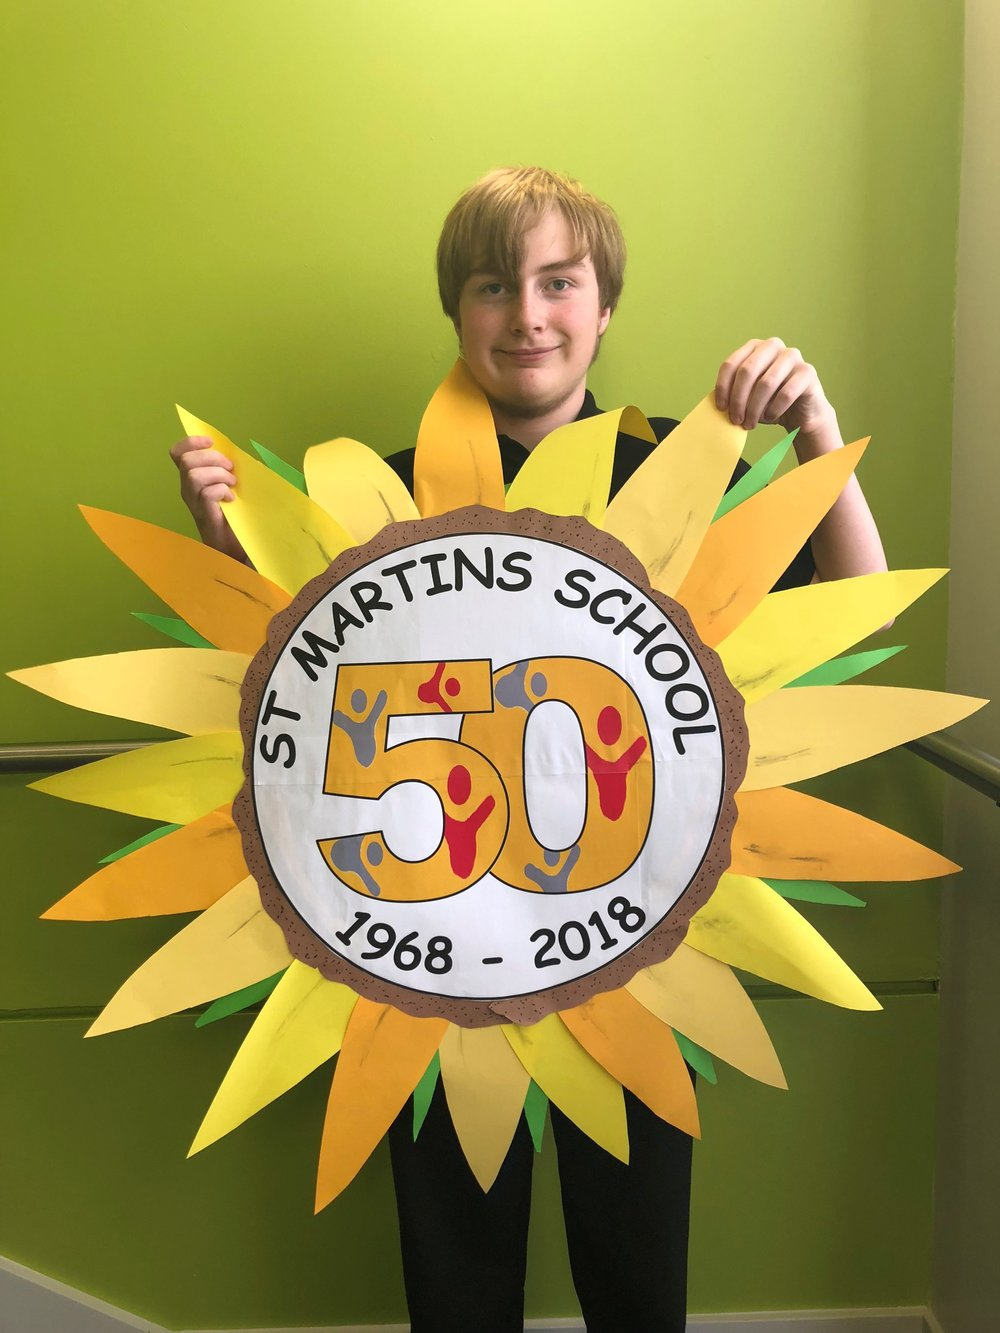 Fourteen-year-old James Palfreyman and his family designed the winning entry, which will be used on school stationery and the website for the next 12 months. Penguin PR: public relations, media and communications